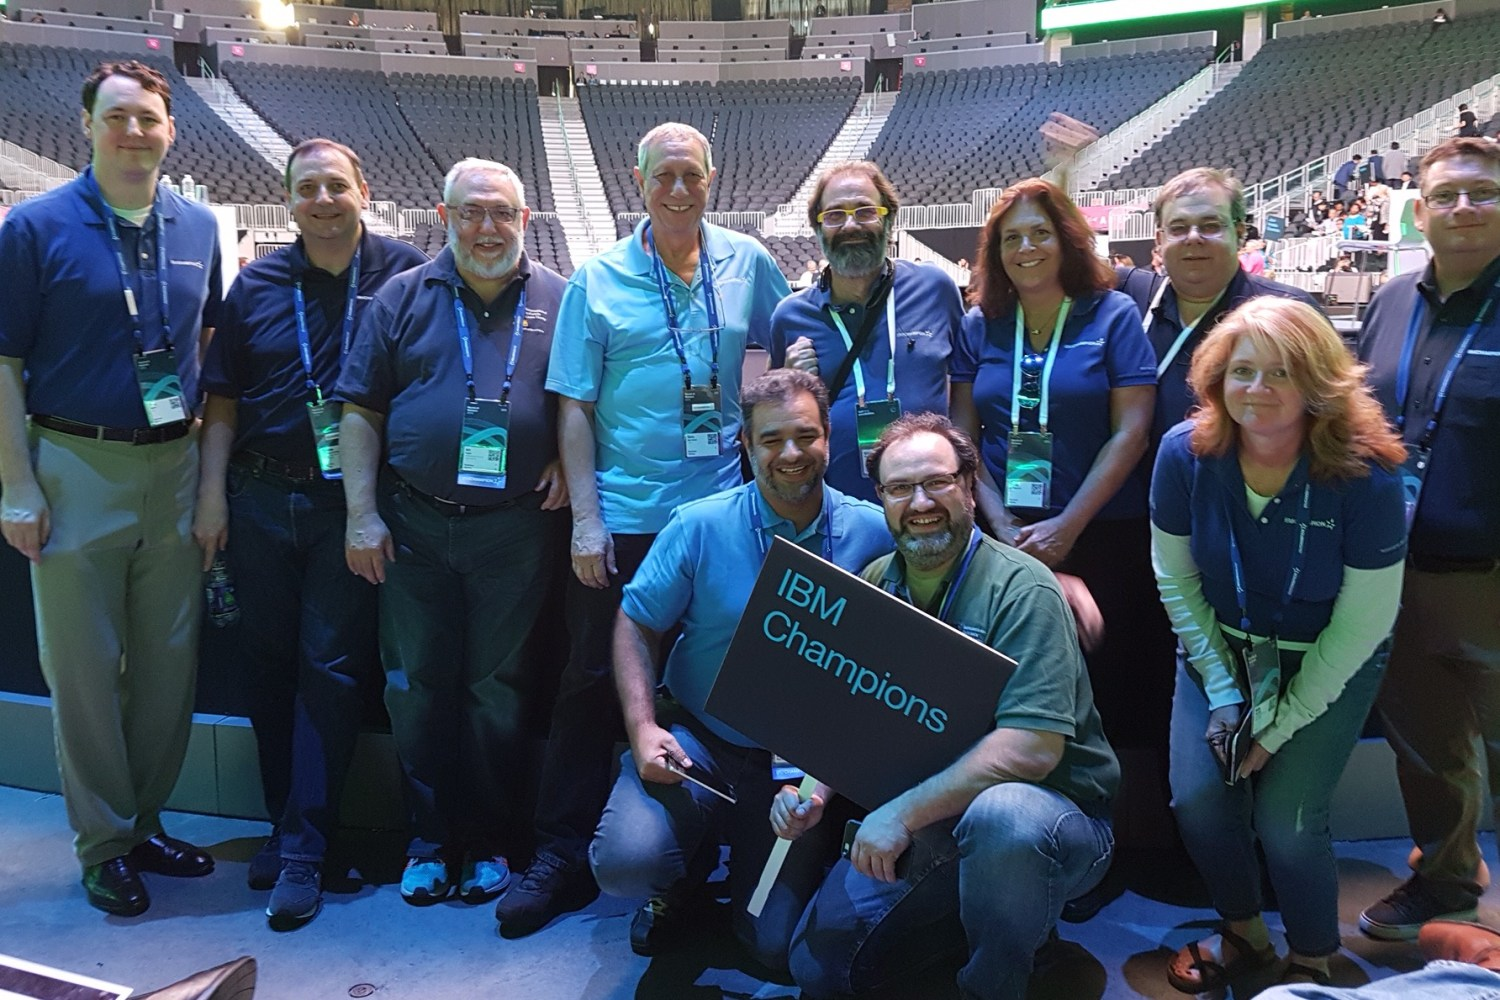 IIUG Board and IBM Champions (for Informix) at WoW (World of Watson) in Las Vegas, NV.